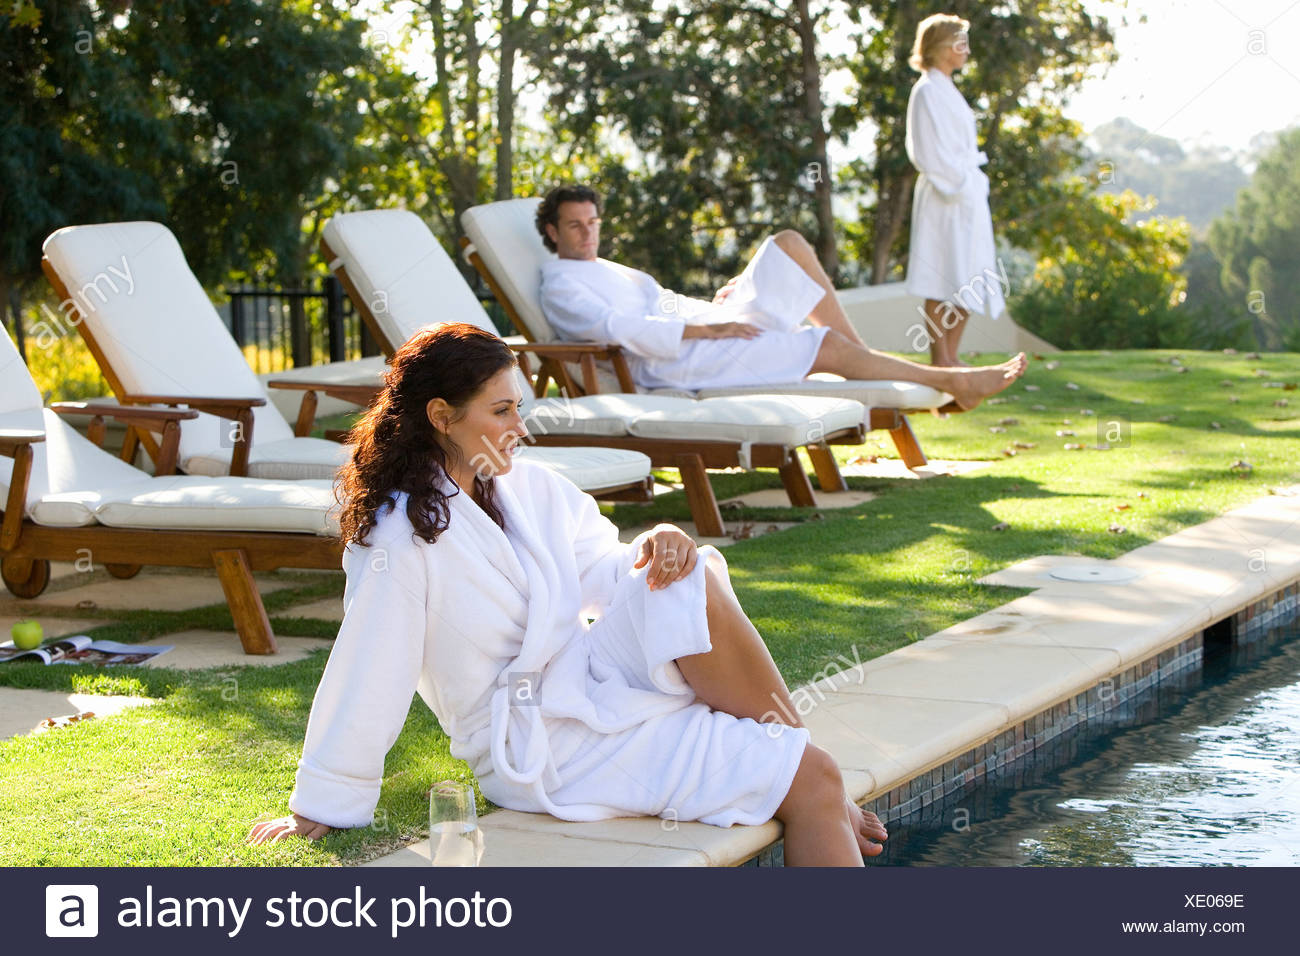 Young Woman Wearing White Robe Sitting By Swimming Pool With Legs In Water,  Man And Woman On Deck Chairs In Background